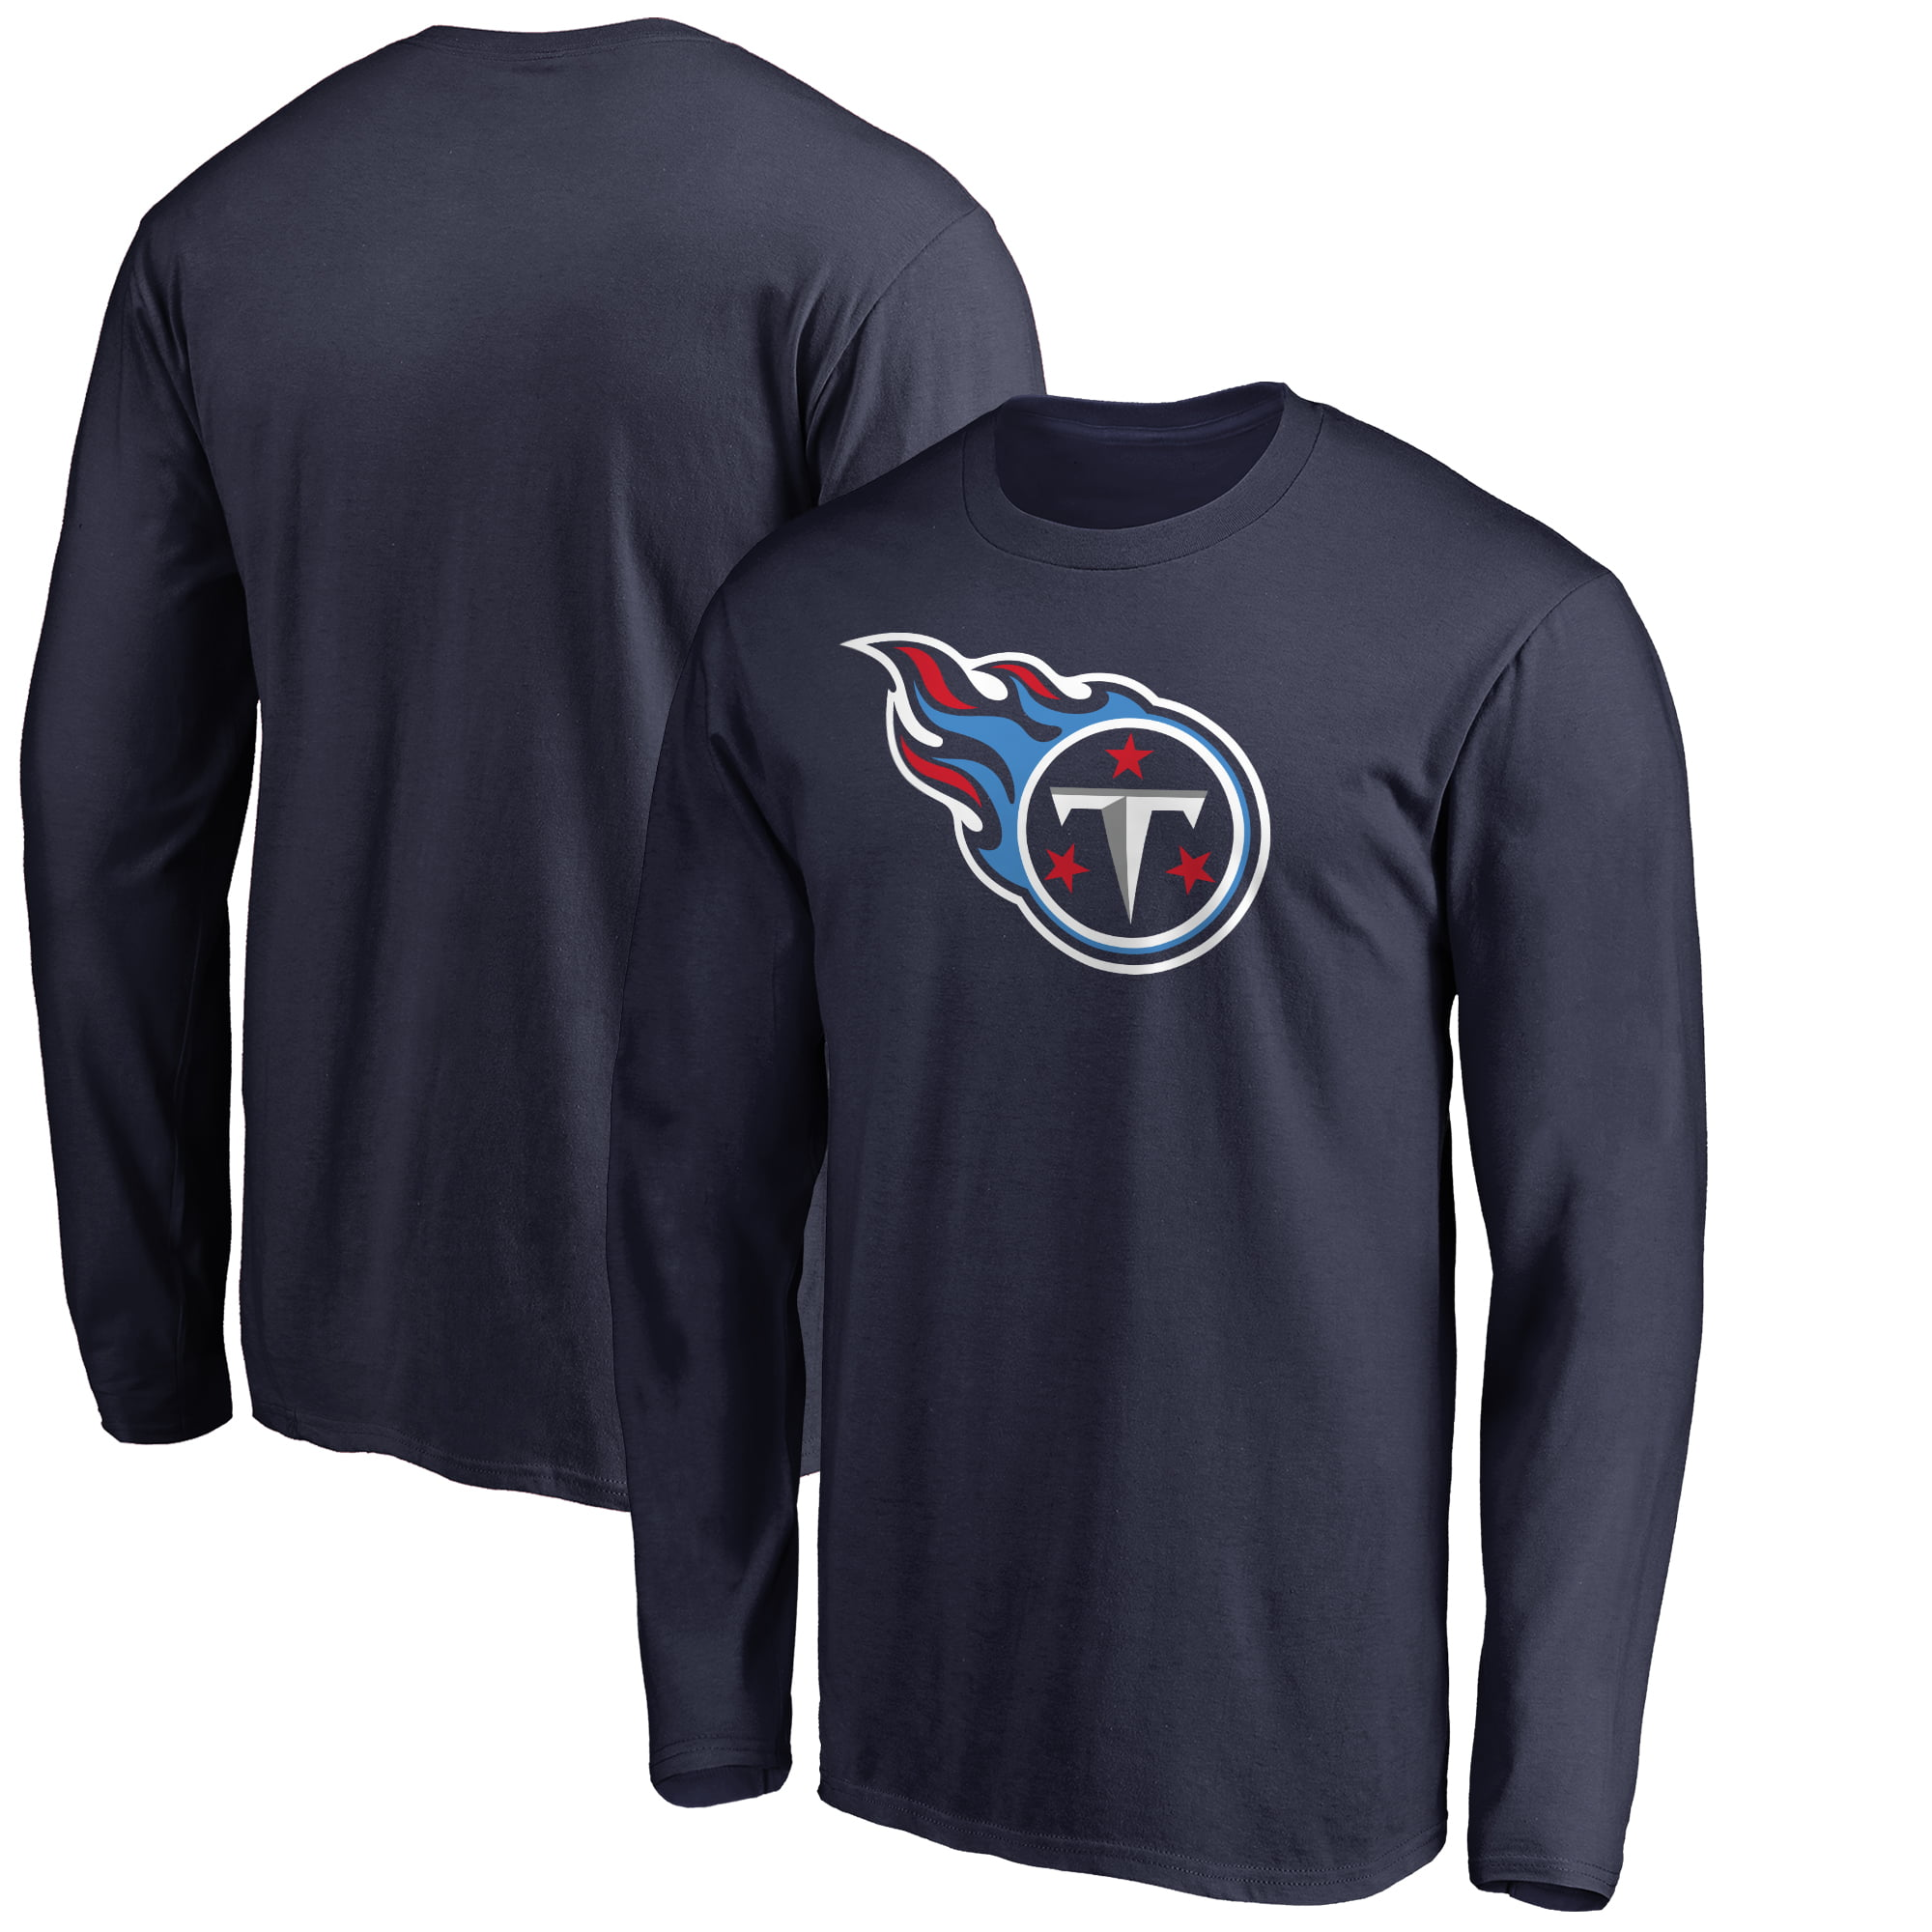 faac35382e4 NFL Pro Line by Fanatics Branded - Men s NFL Pro Line by Fanatics Branded  Navy Tennessee Titans Big   Tall Primary Logo Long Sleeve T-Shirt -  Walmart.com